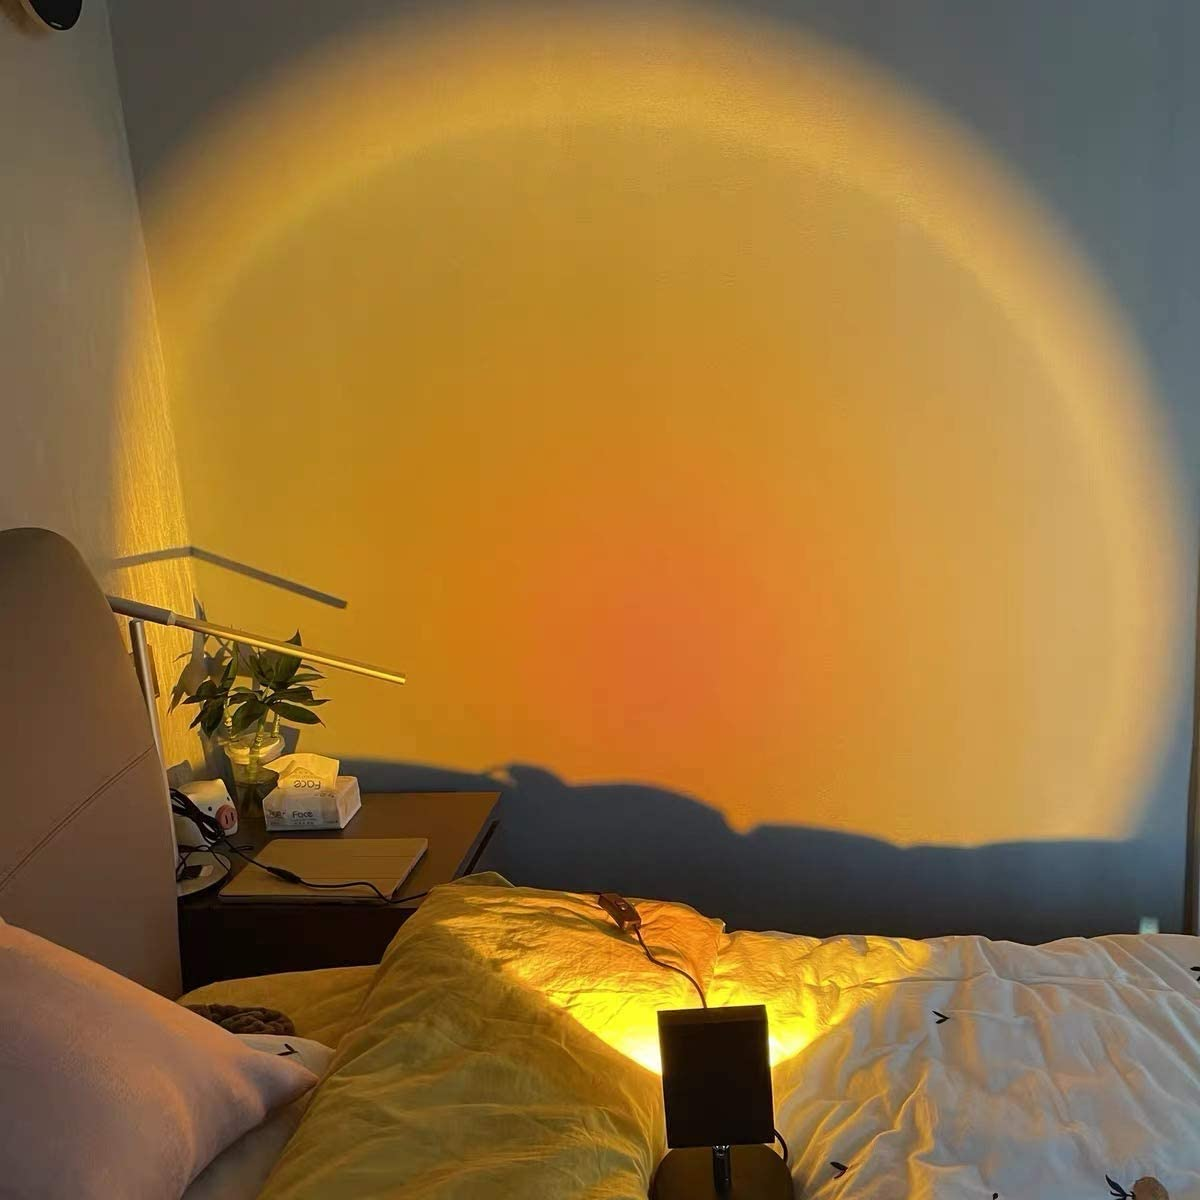 Rainbow Sunset Projection Lamp,Floor Stand Night Light Projector,180 Degree Rotated Rainbow Projection Led Light,for Living Room Bedroom Romantic Projector Gift for Wedding Birthday Party